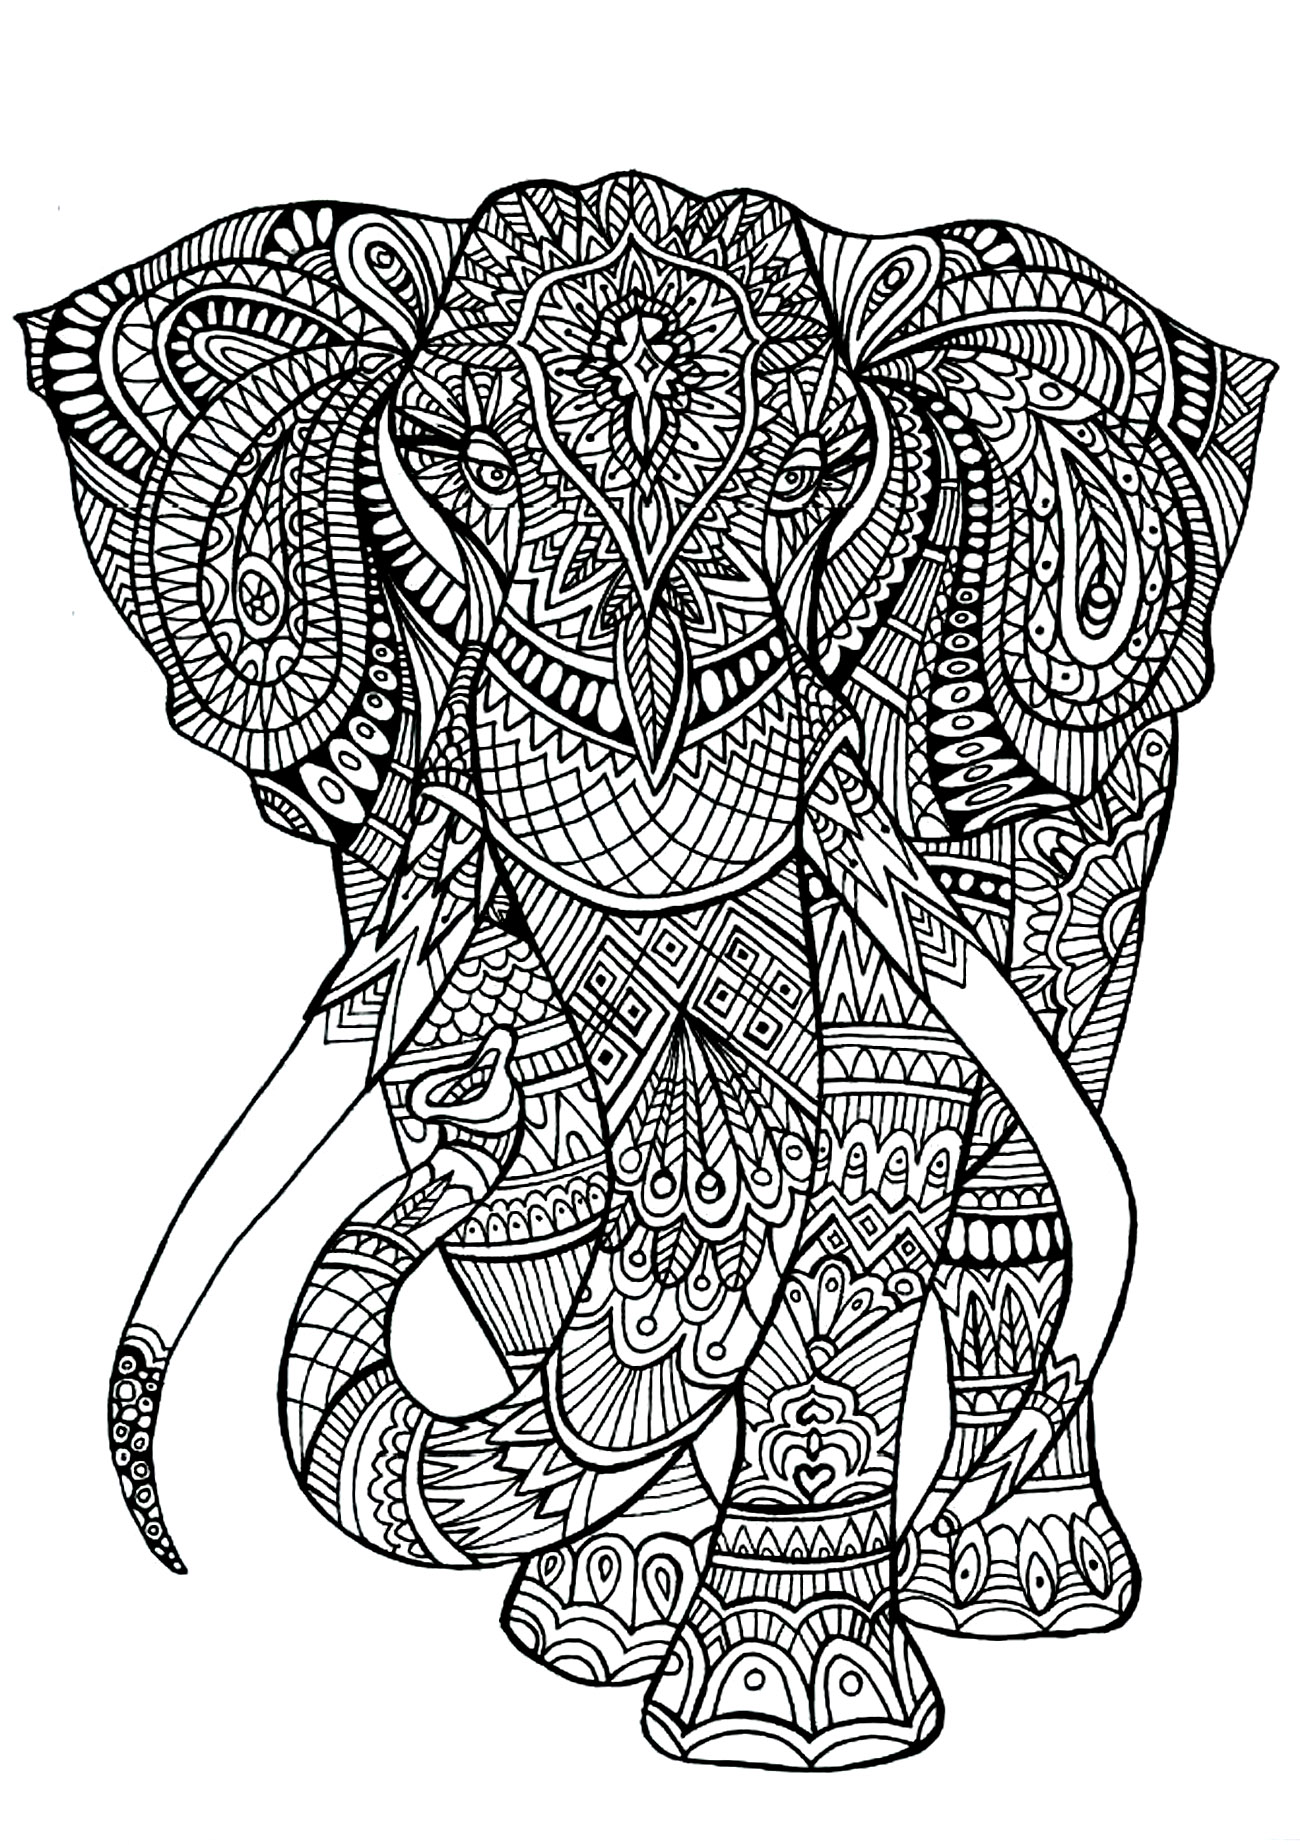 Exceptional Coloring Page : Elephant Patterns. A Big Elephant Full Of Details